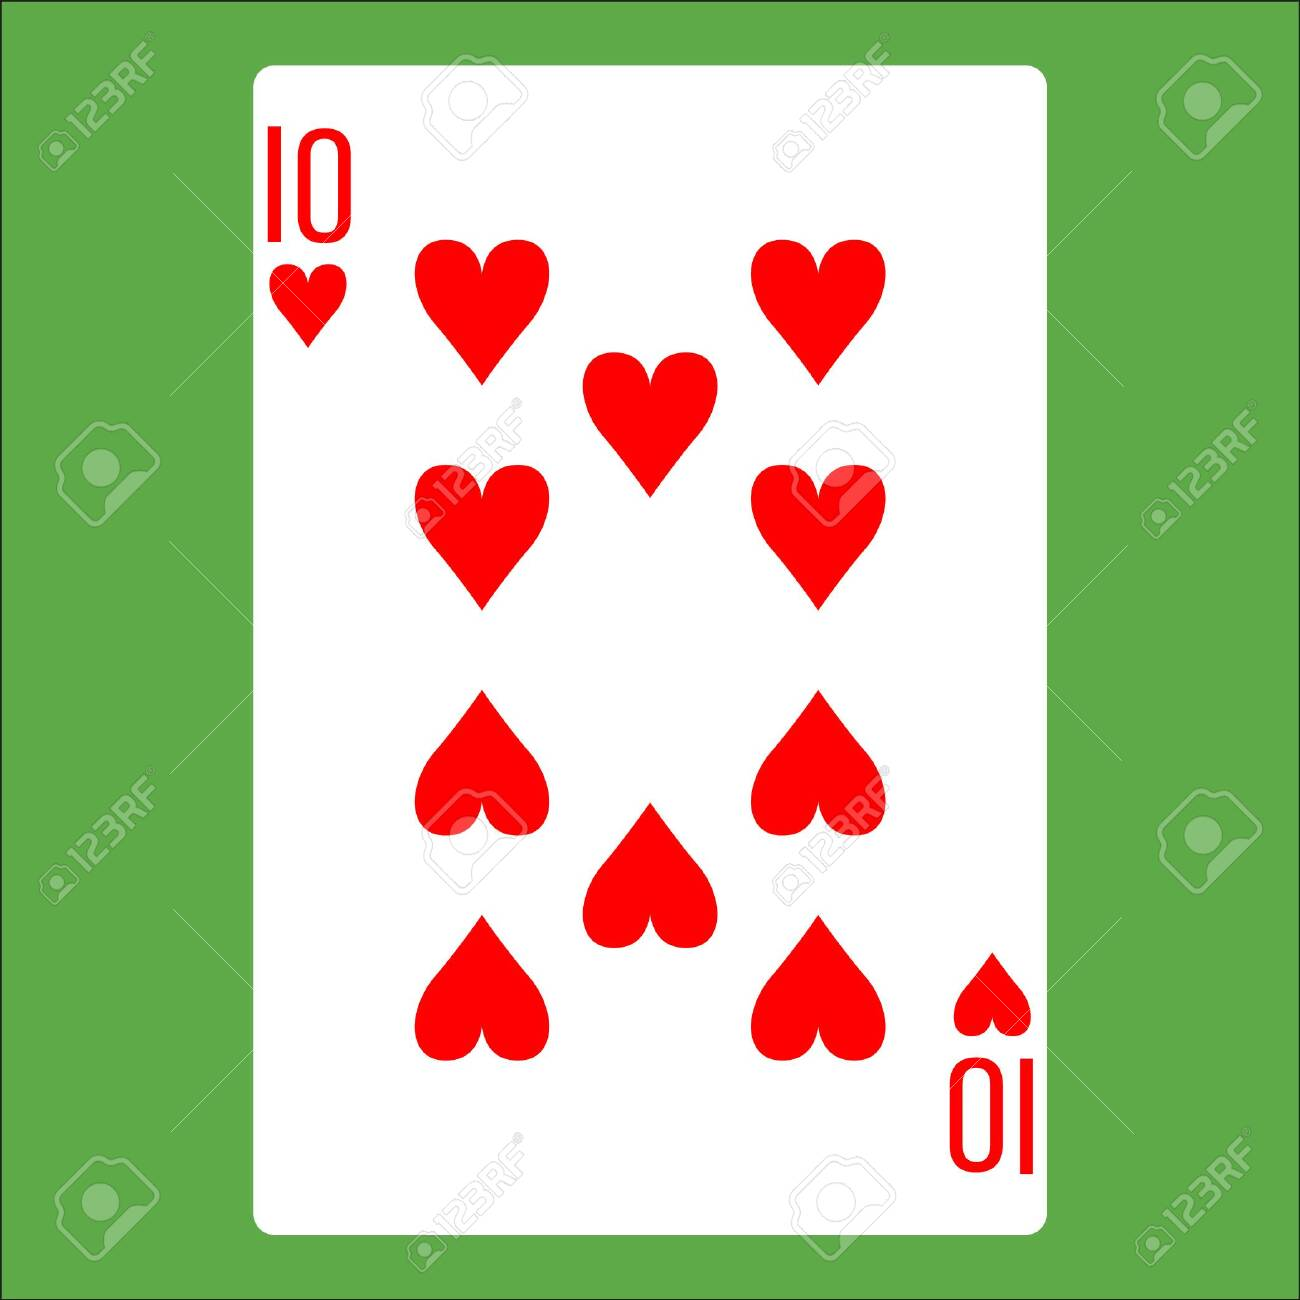 Flat color icon for poker card. - 156269662